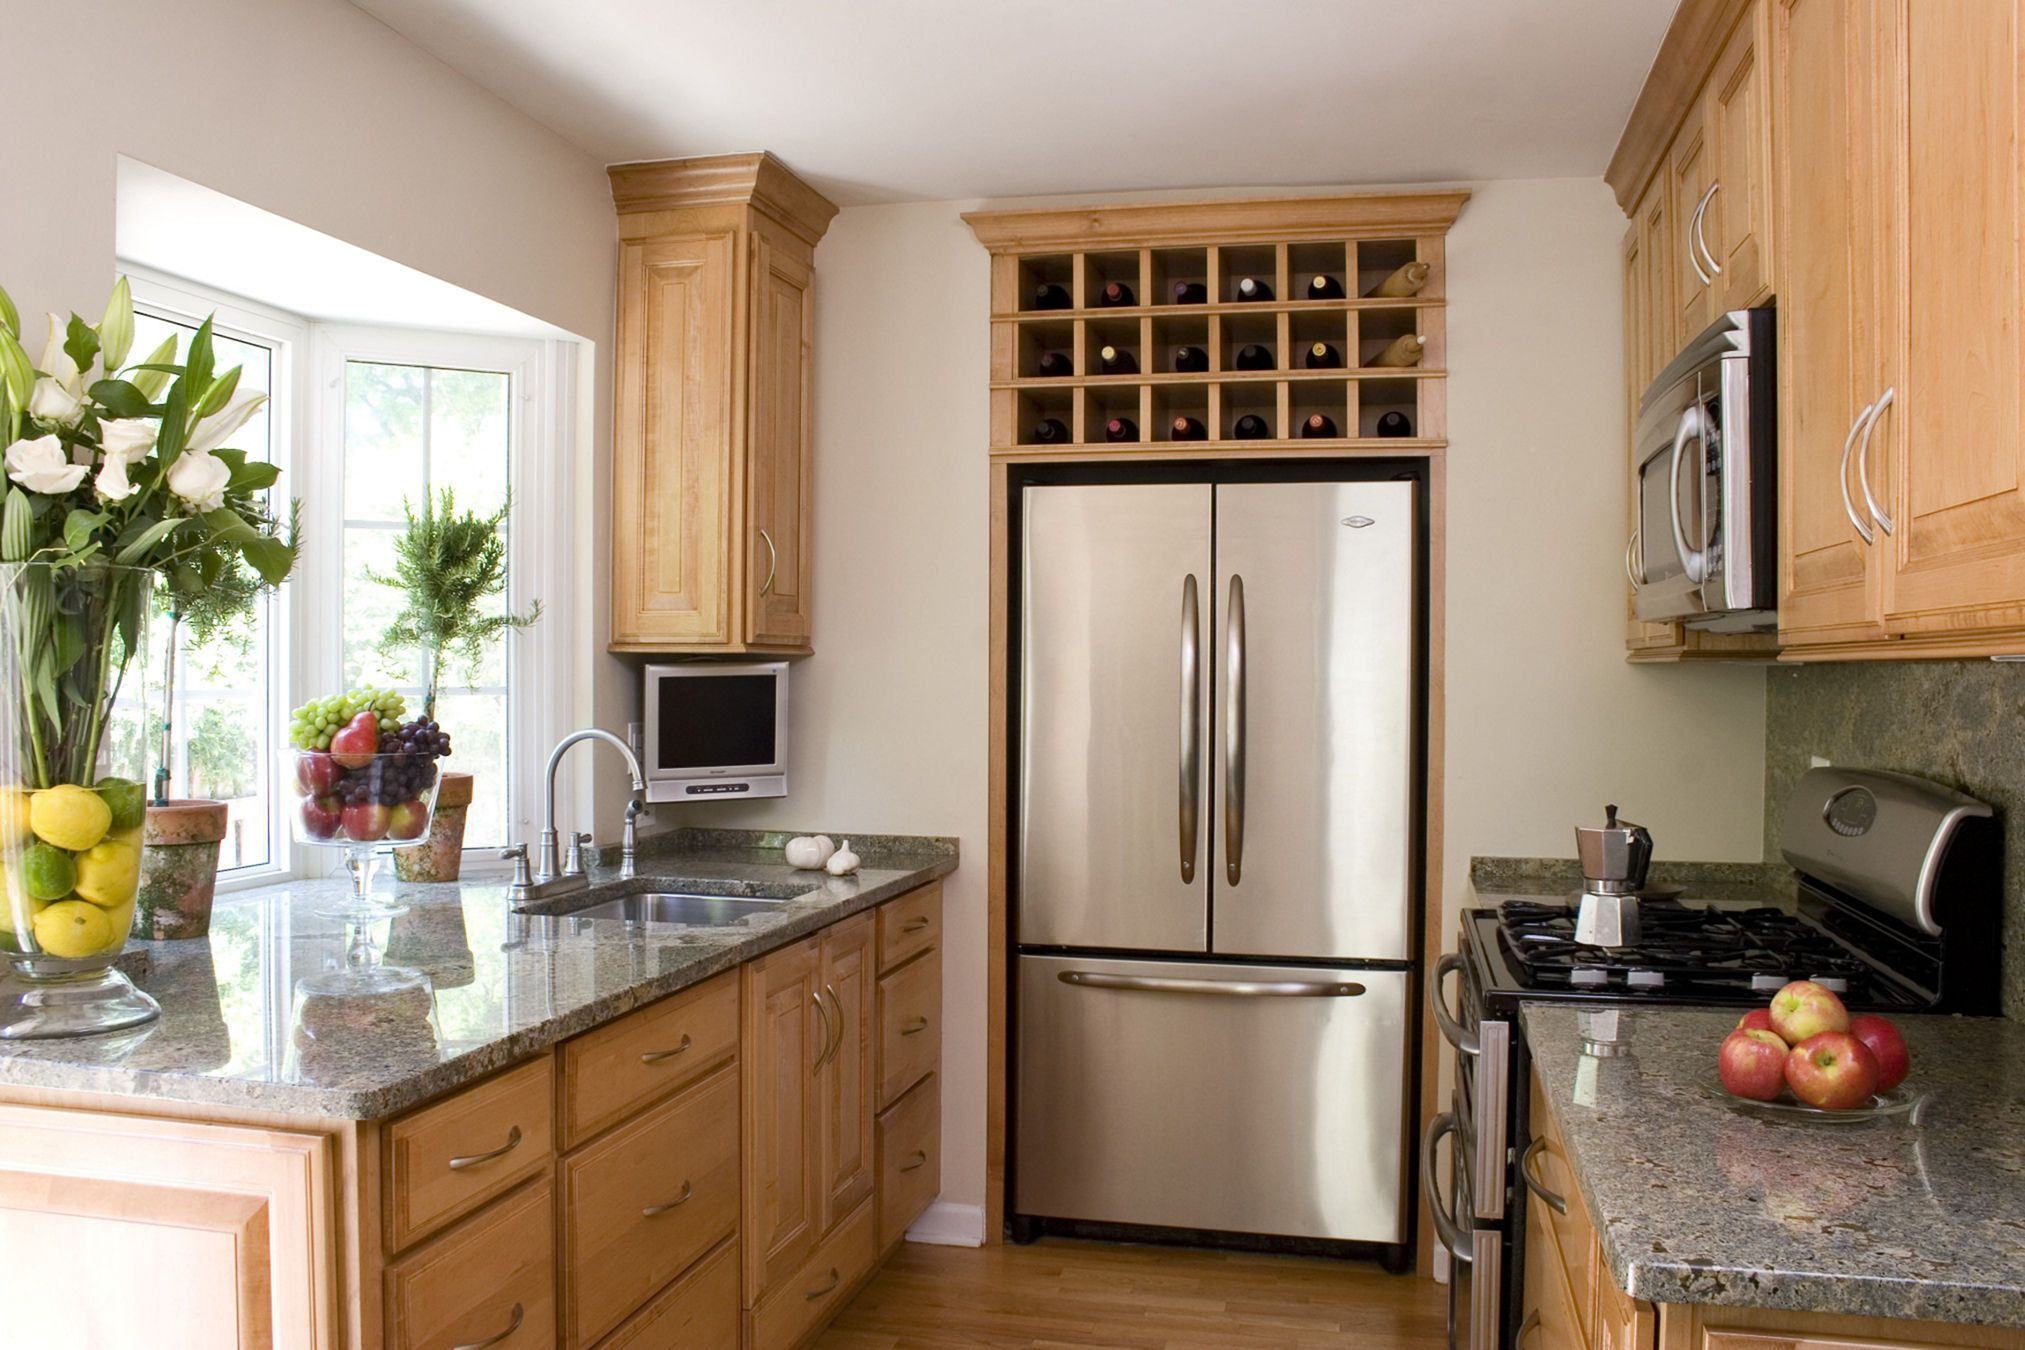 9 Amazing Small Kitchen Decorating Ideas for You to Try   Simple ...